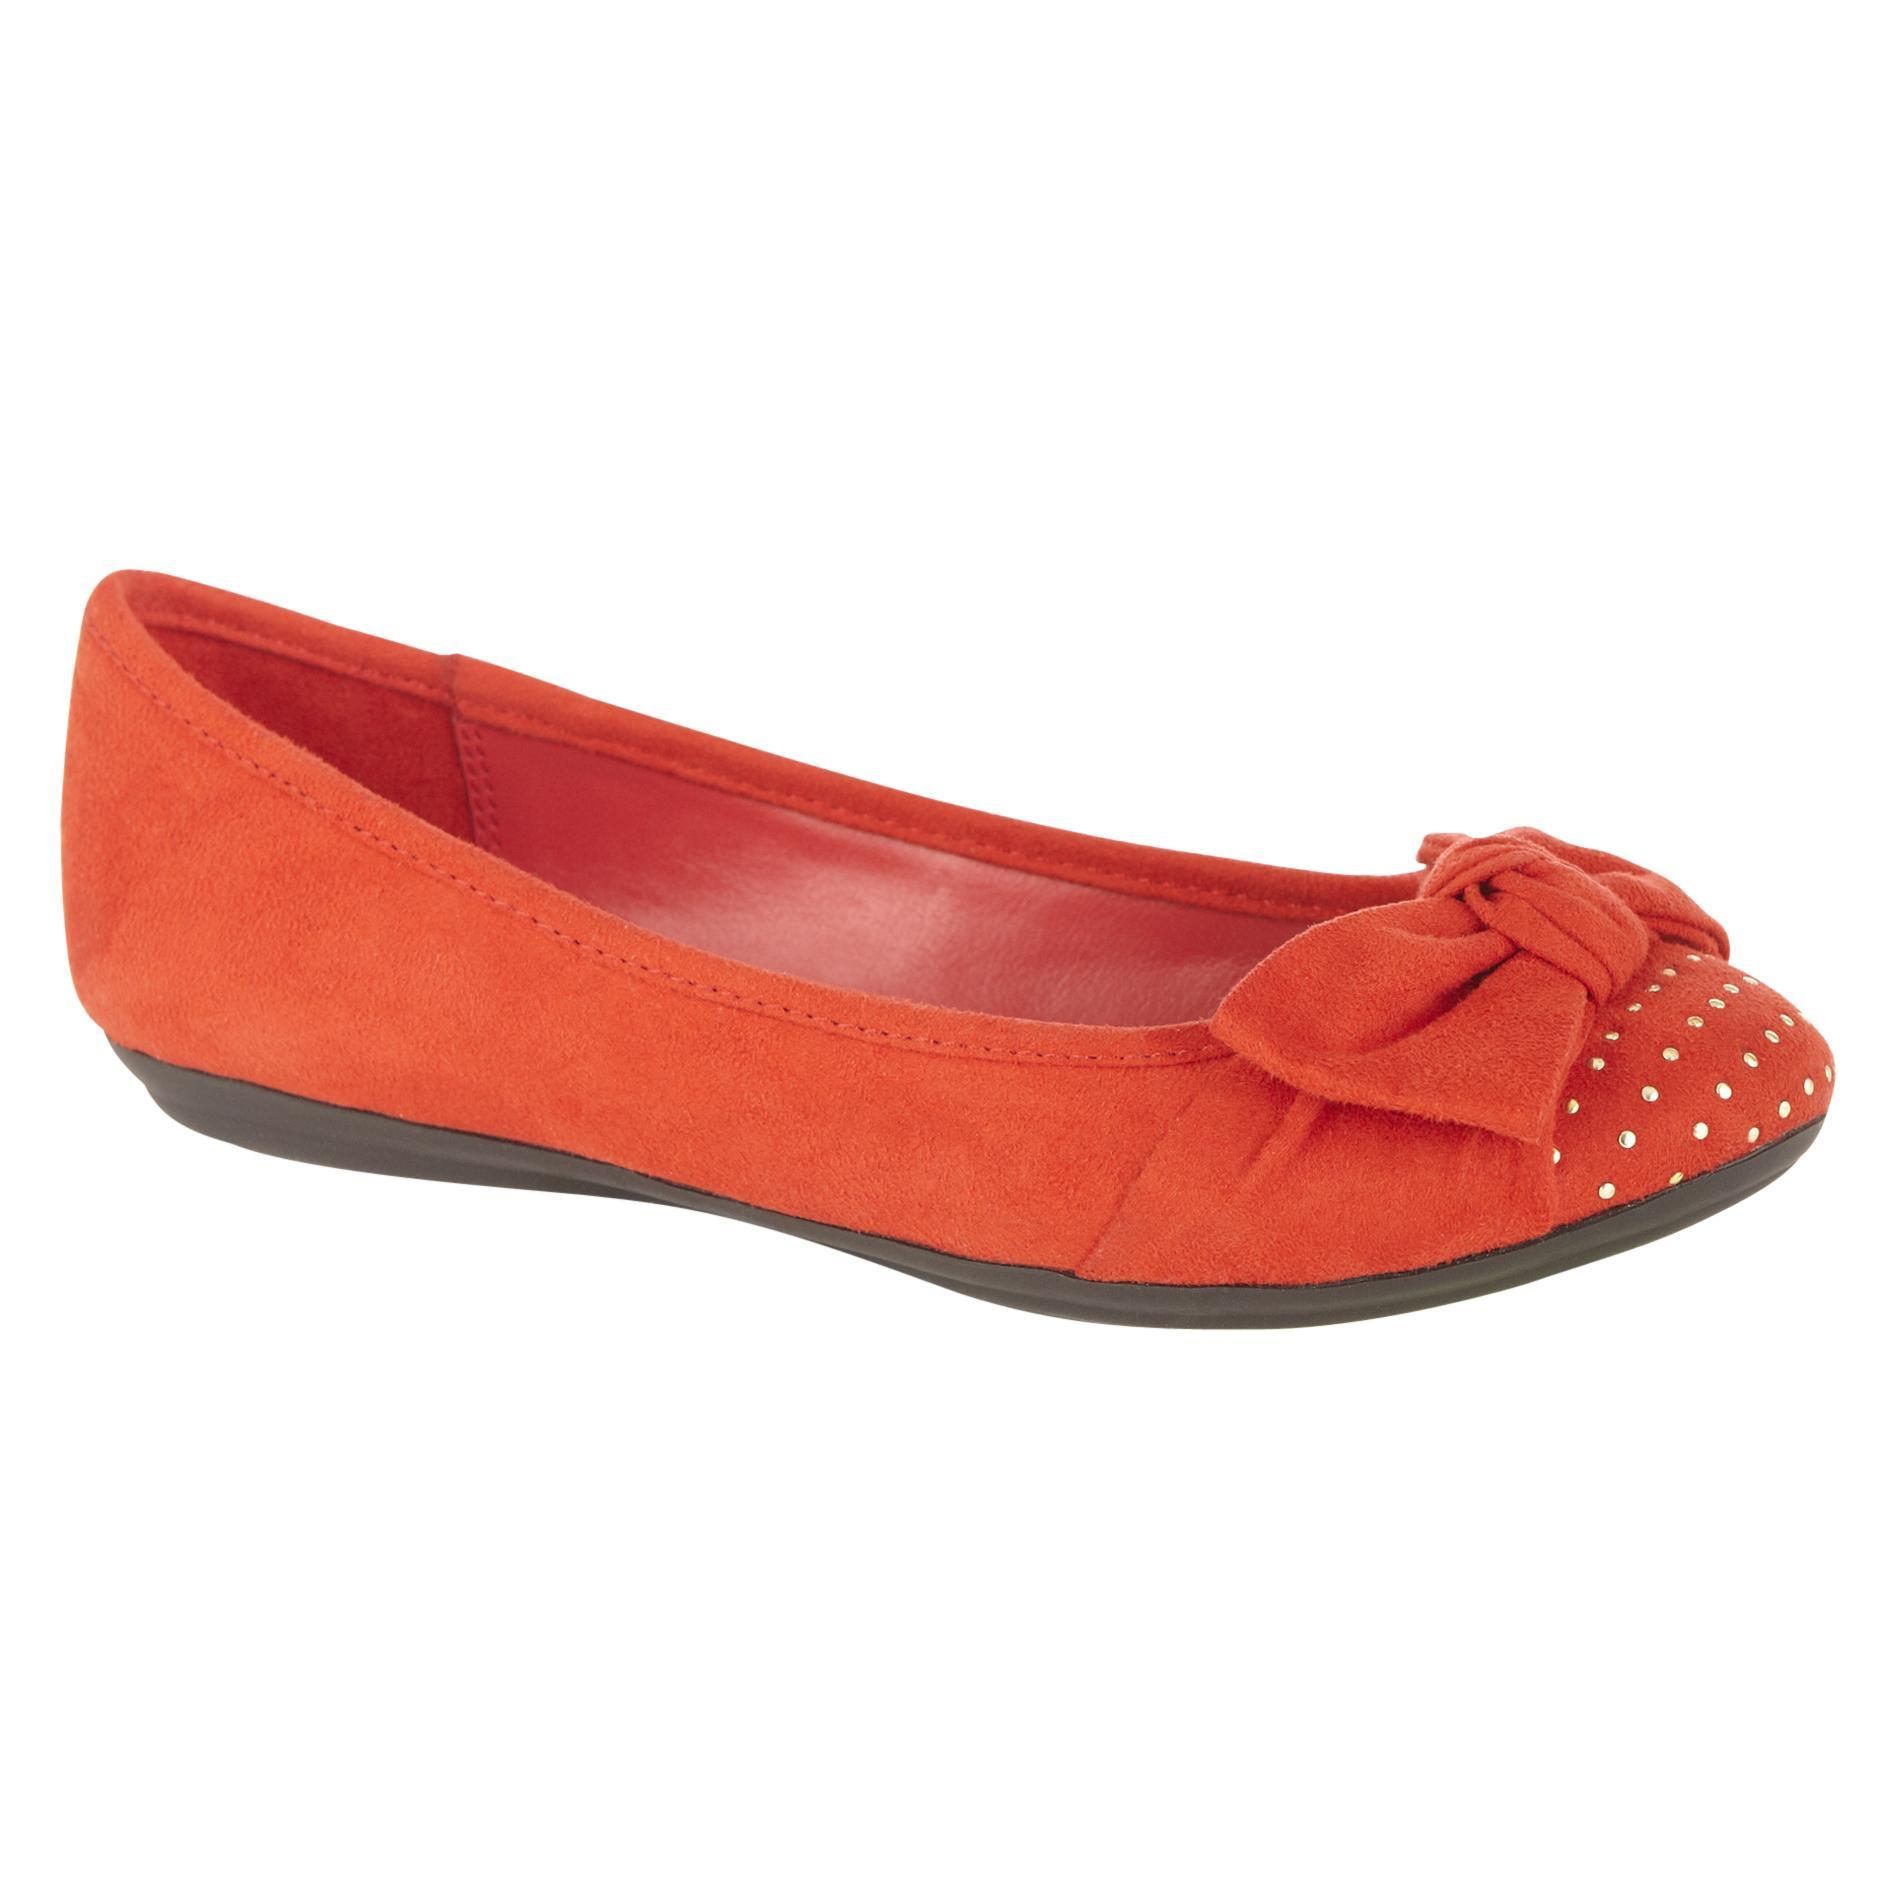 Women's Casual Ballet Flat Glimmer - Red